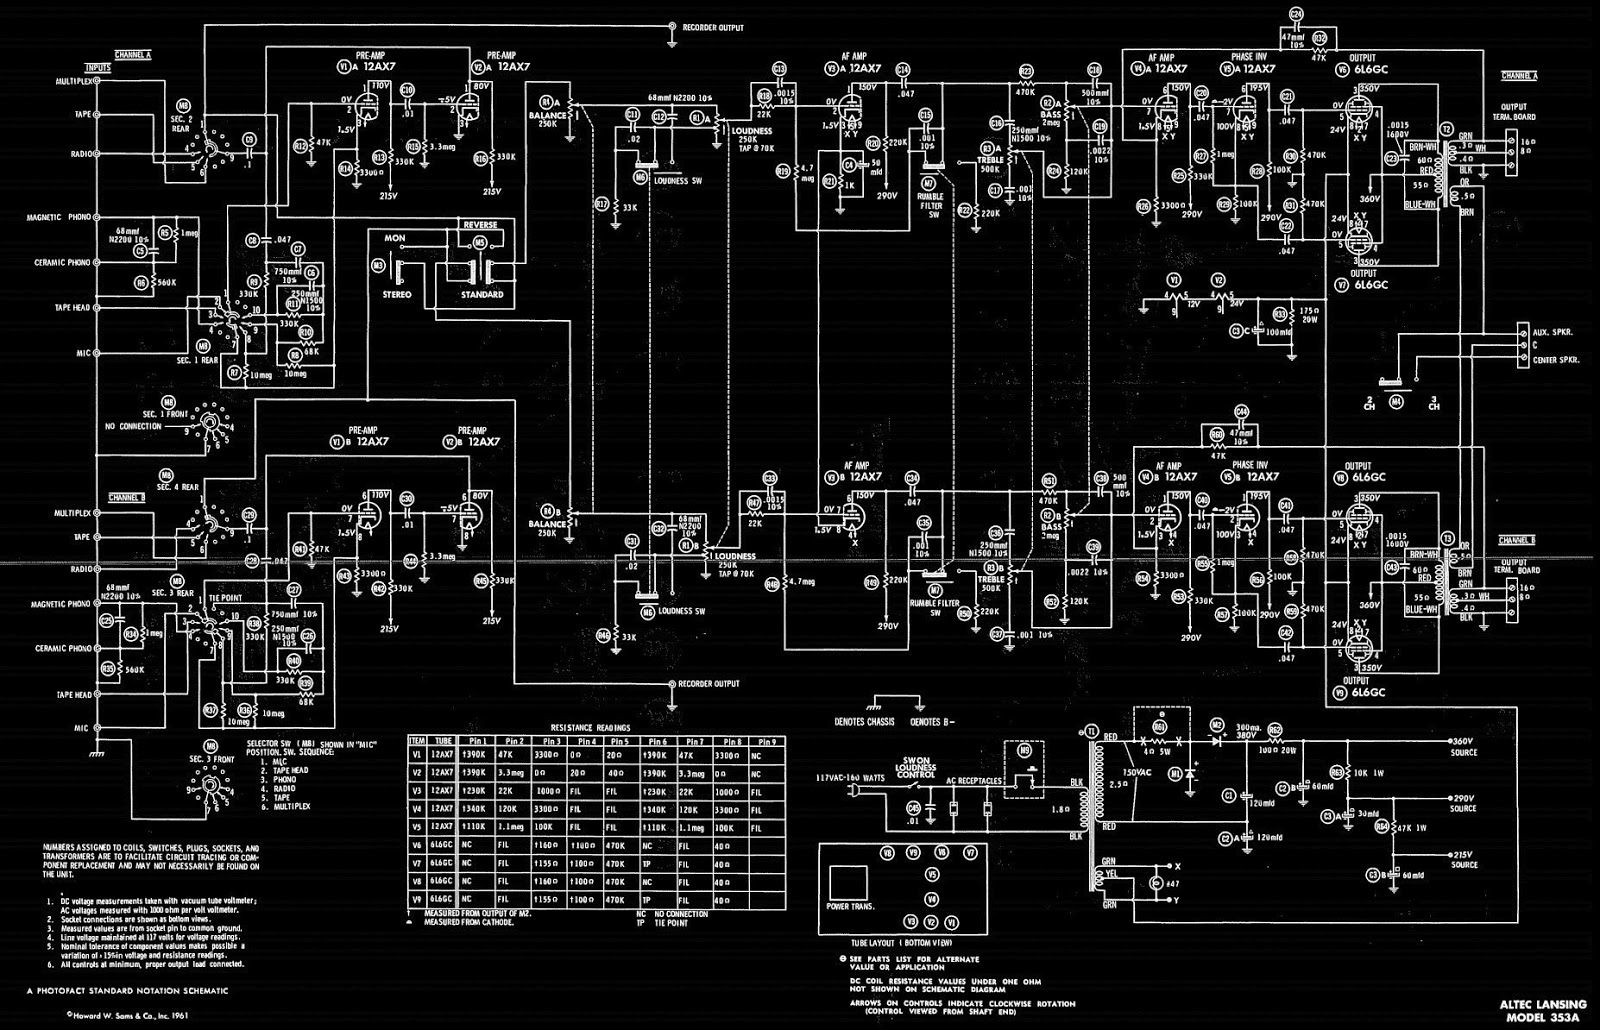 Altec Lansing 353a Power Amplifier Vacuum Tube Type Circuit 12ax7 Wiring Diagram Pin Out 6l6